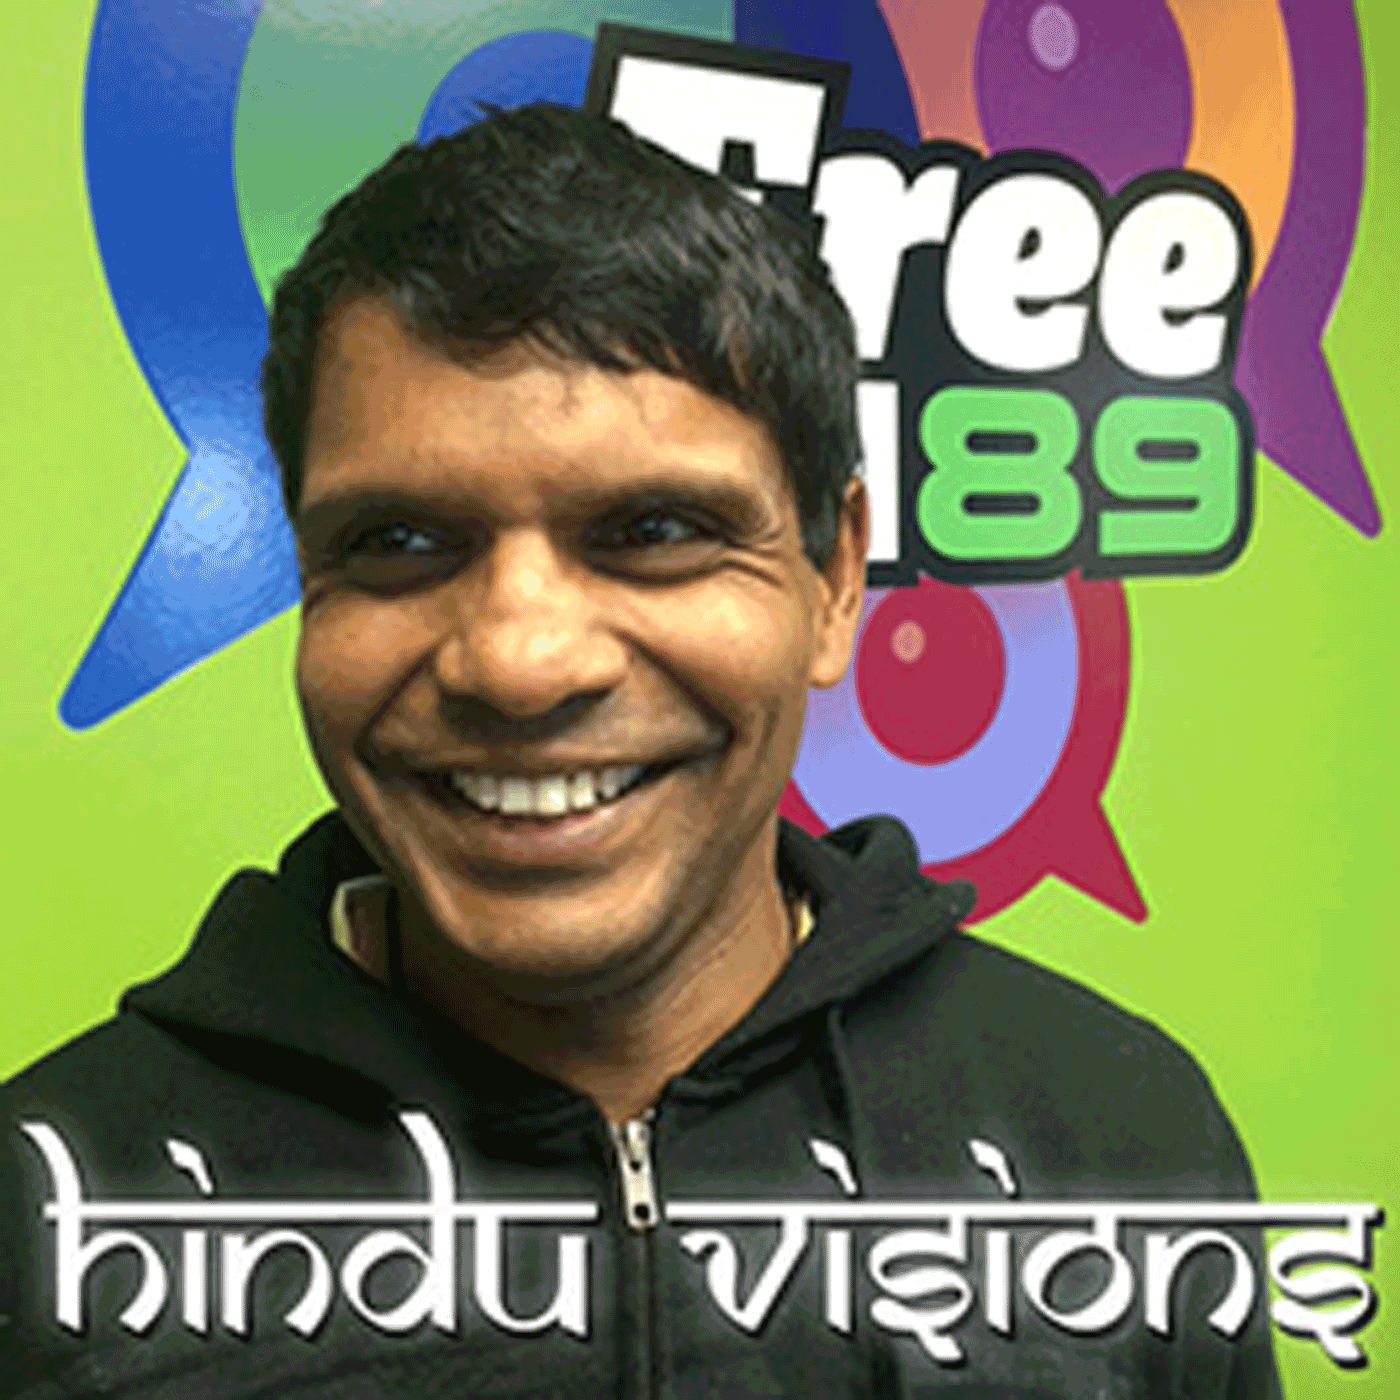 https://cdn.accessradio.org/StationFolder/freefm89/Images/Hinduisions.png